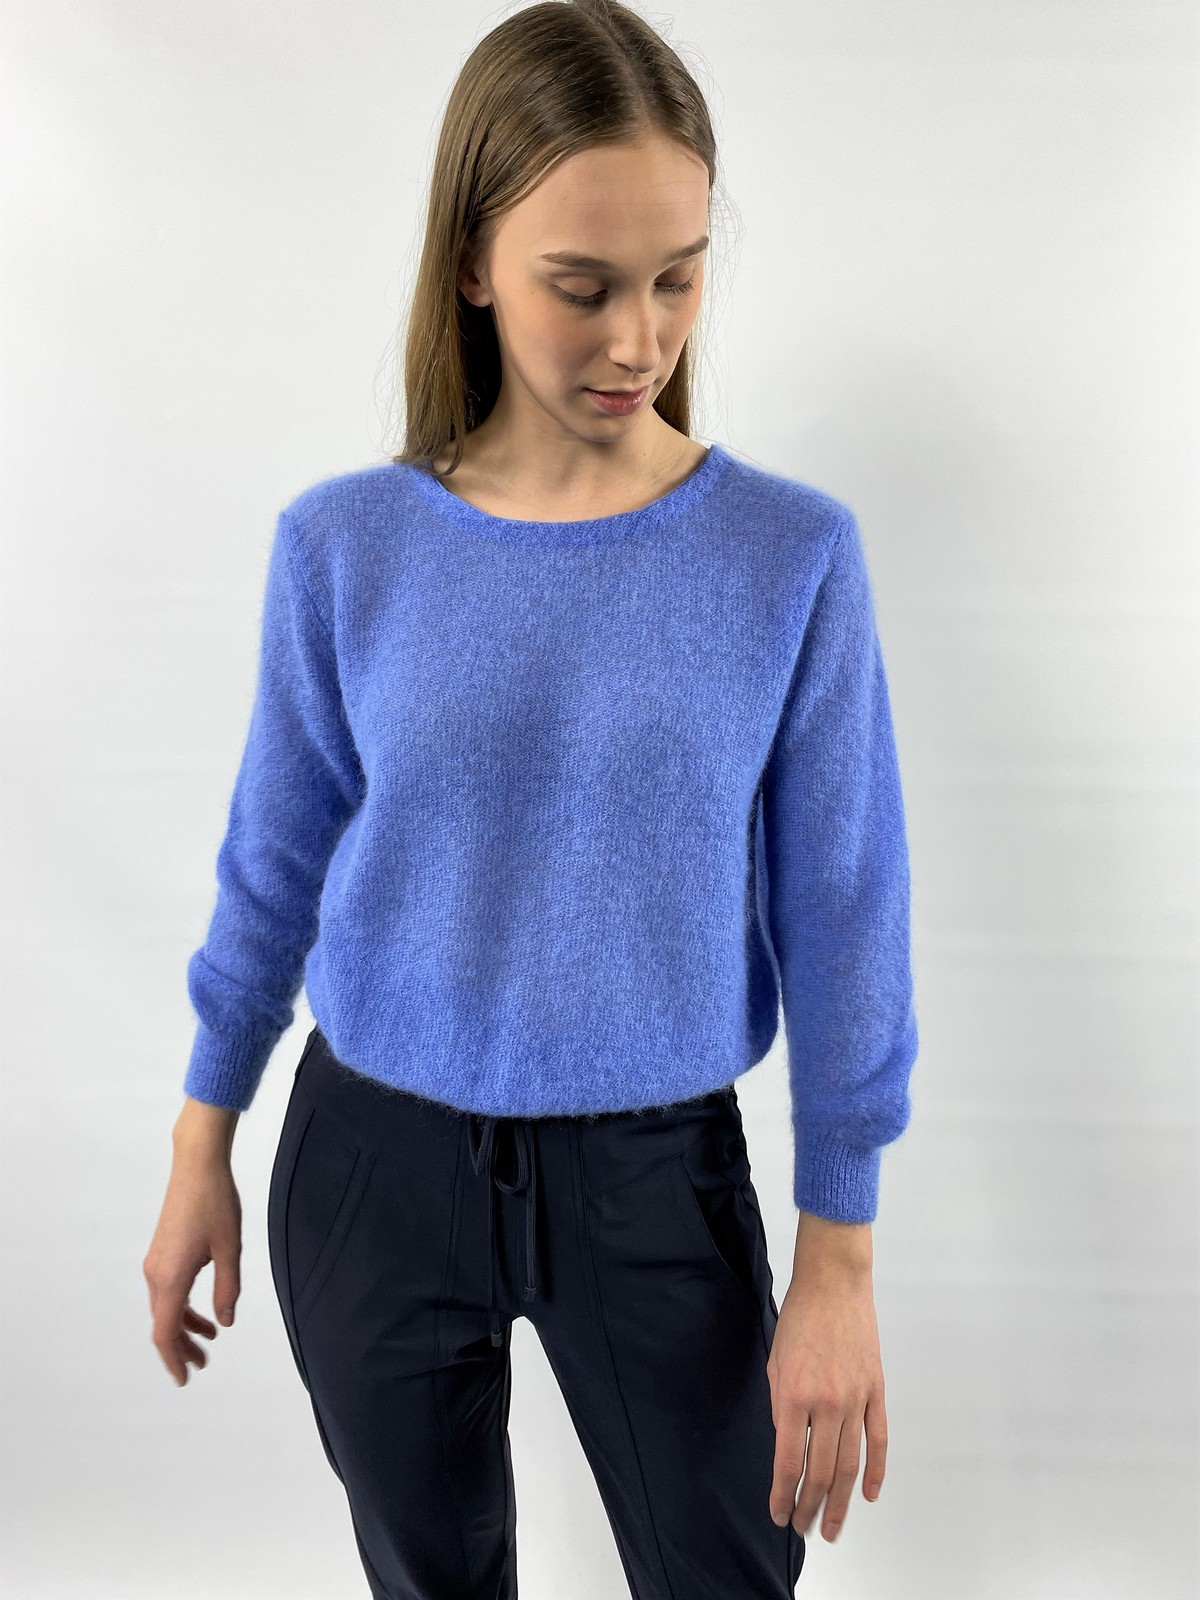 Pull knoopjes achter - A2275 - Anneclaire